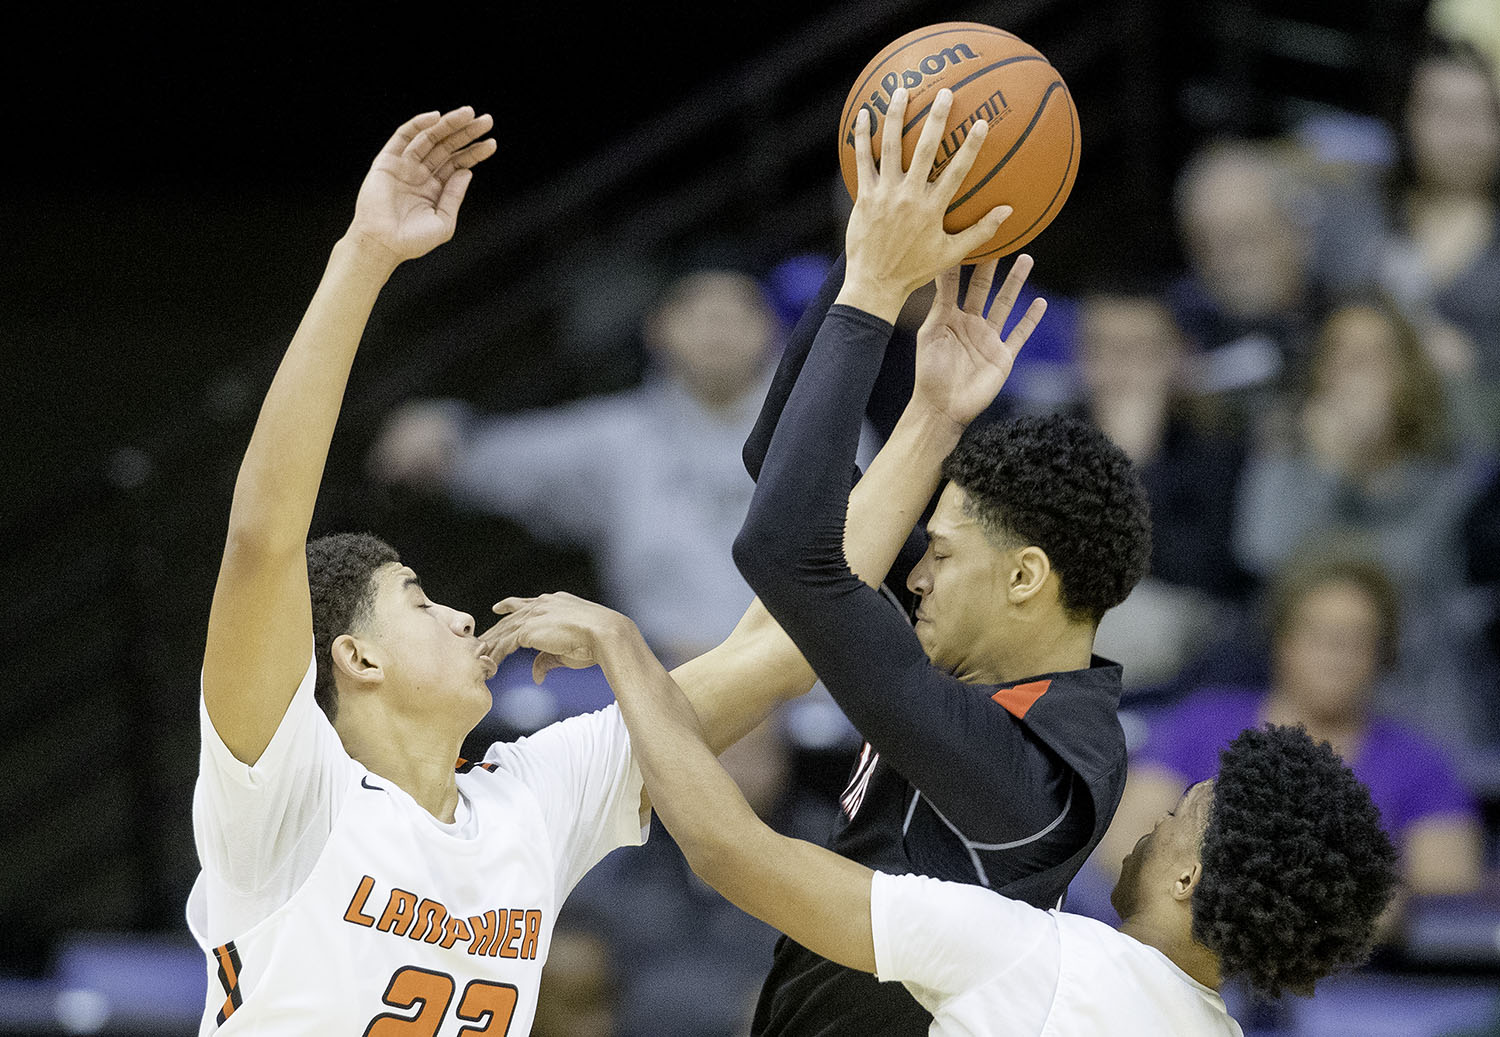 Lanphier's Tye Banks and Makai Phillips pressure Springfield's Bennie Slater during the Boys City Tournament at the Bank of Springfield Center Friday, Jan. 18, 2019.  [Ted Schurter/The State Journal-Register]